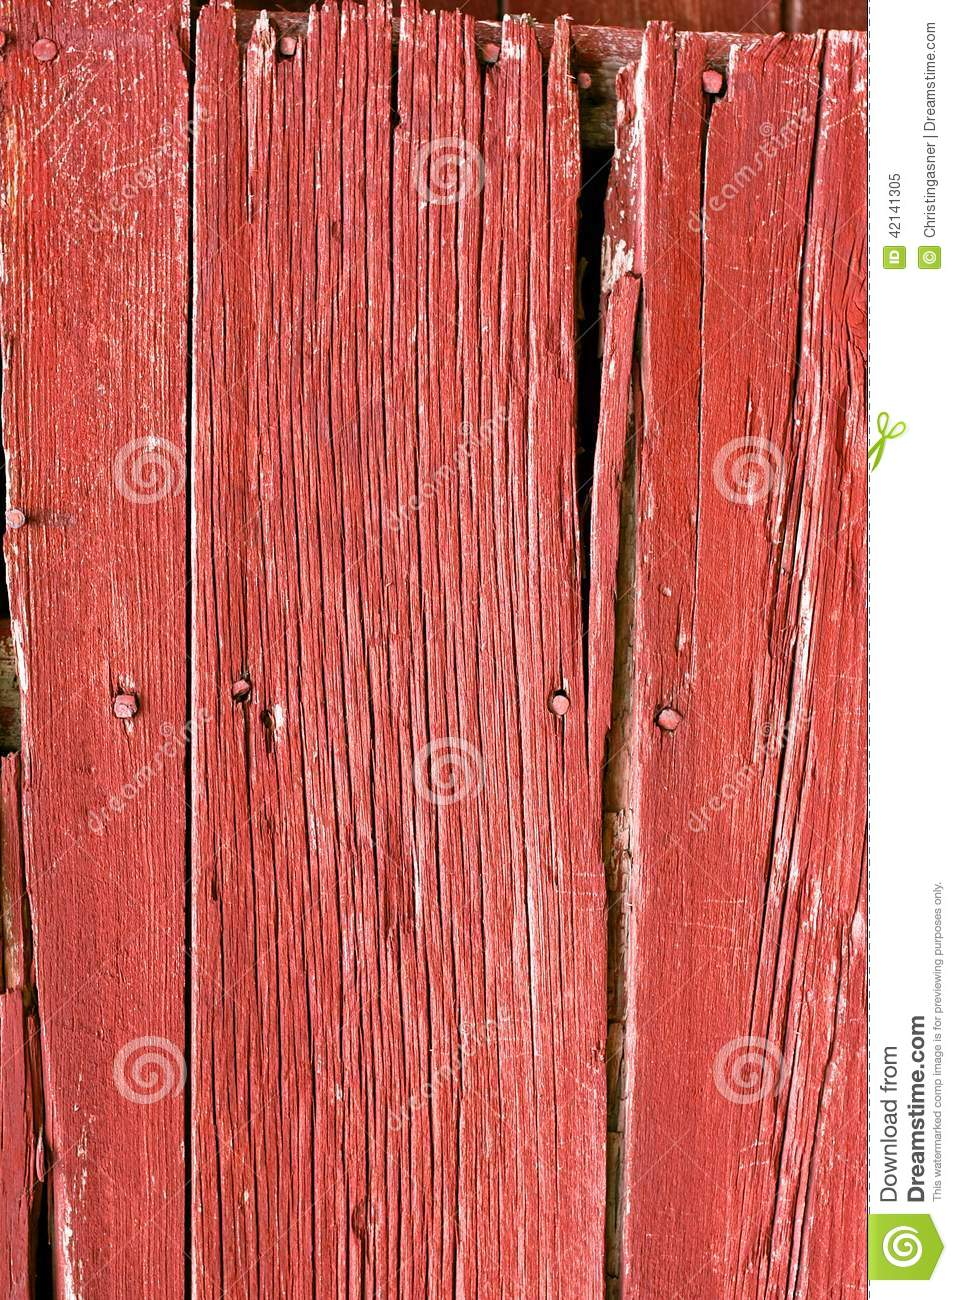 Rustic Red Barn Wood Background Stock Photo Image 42141305